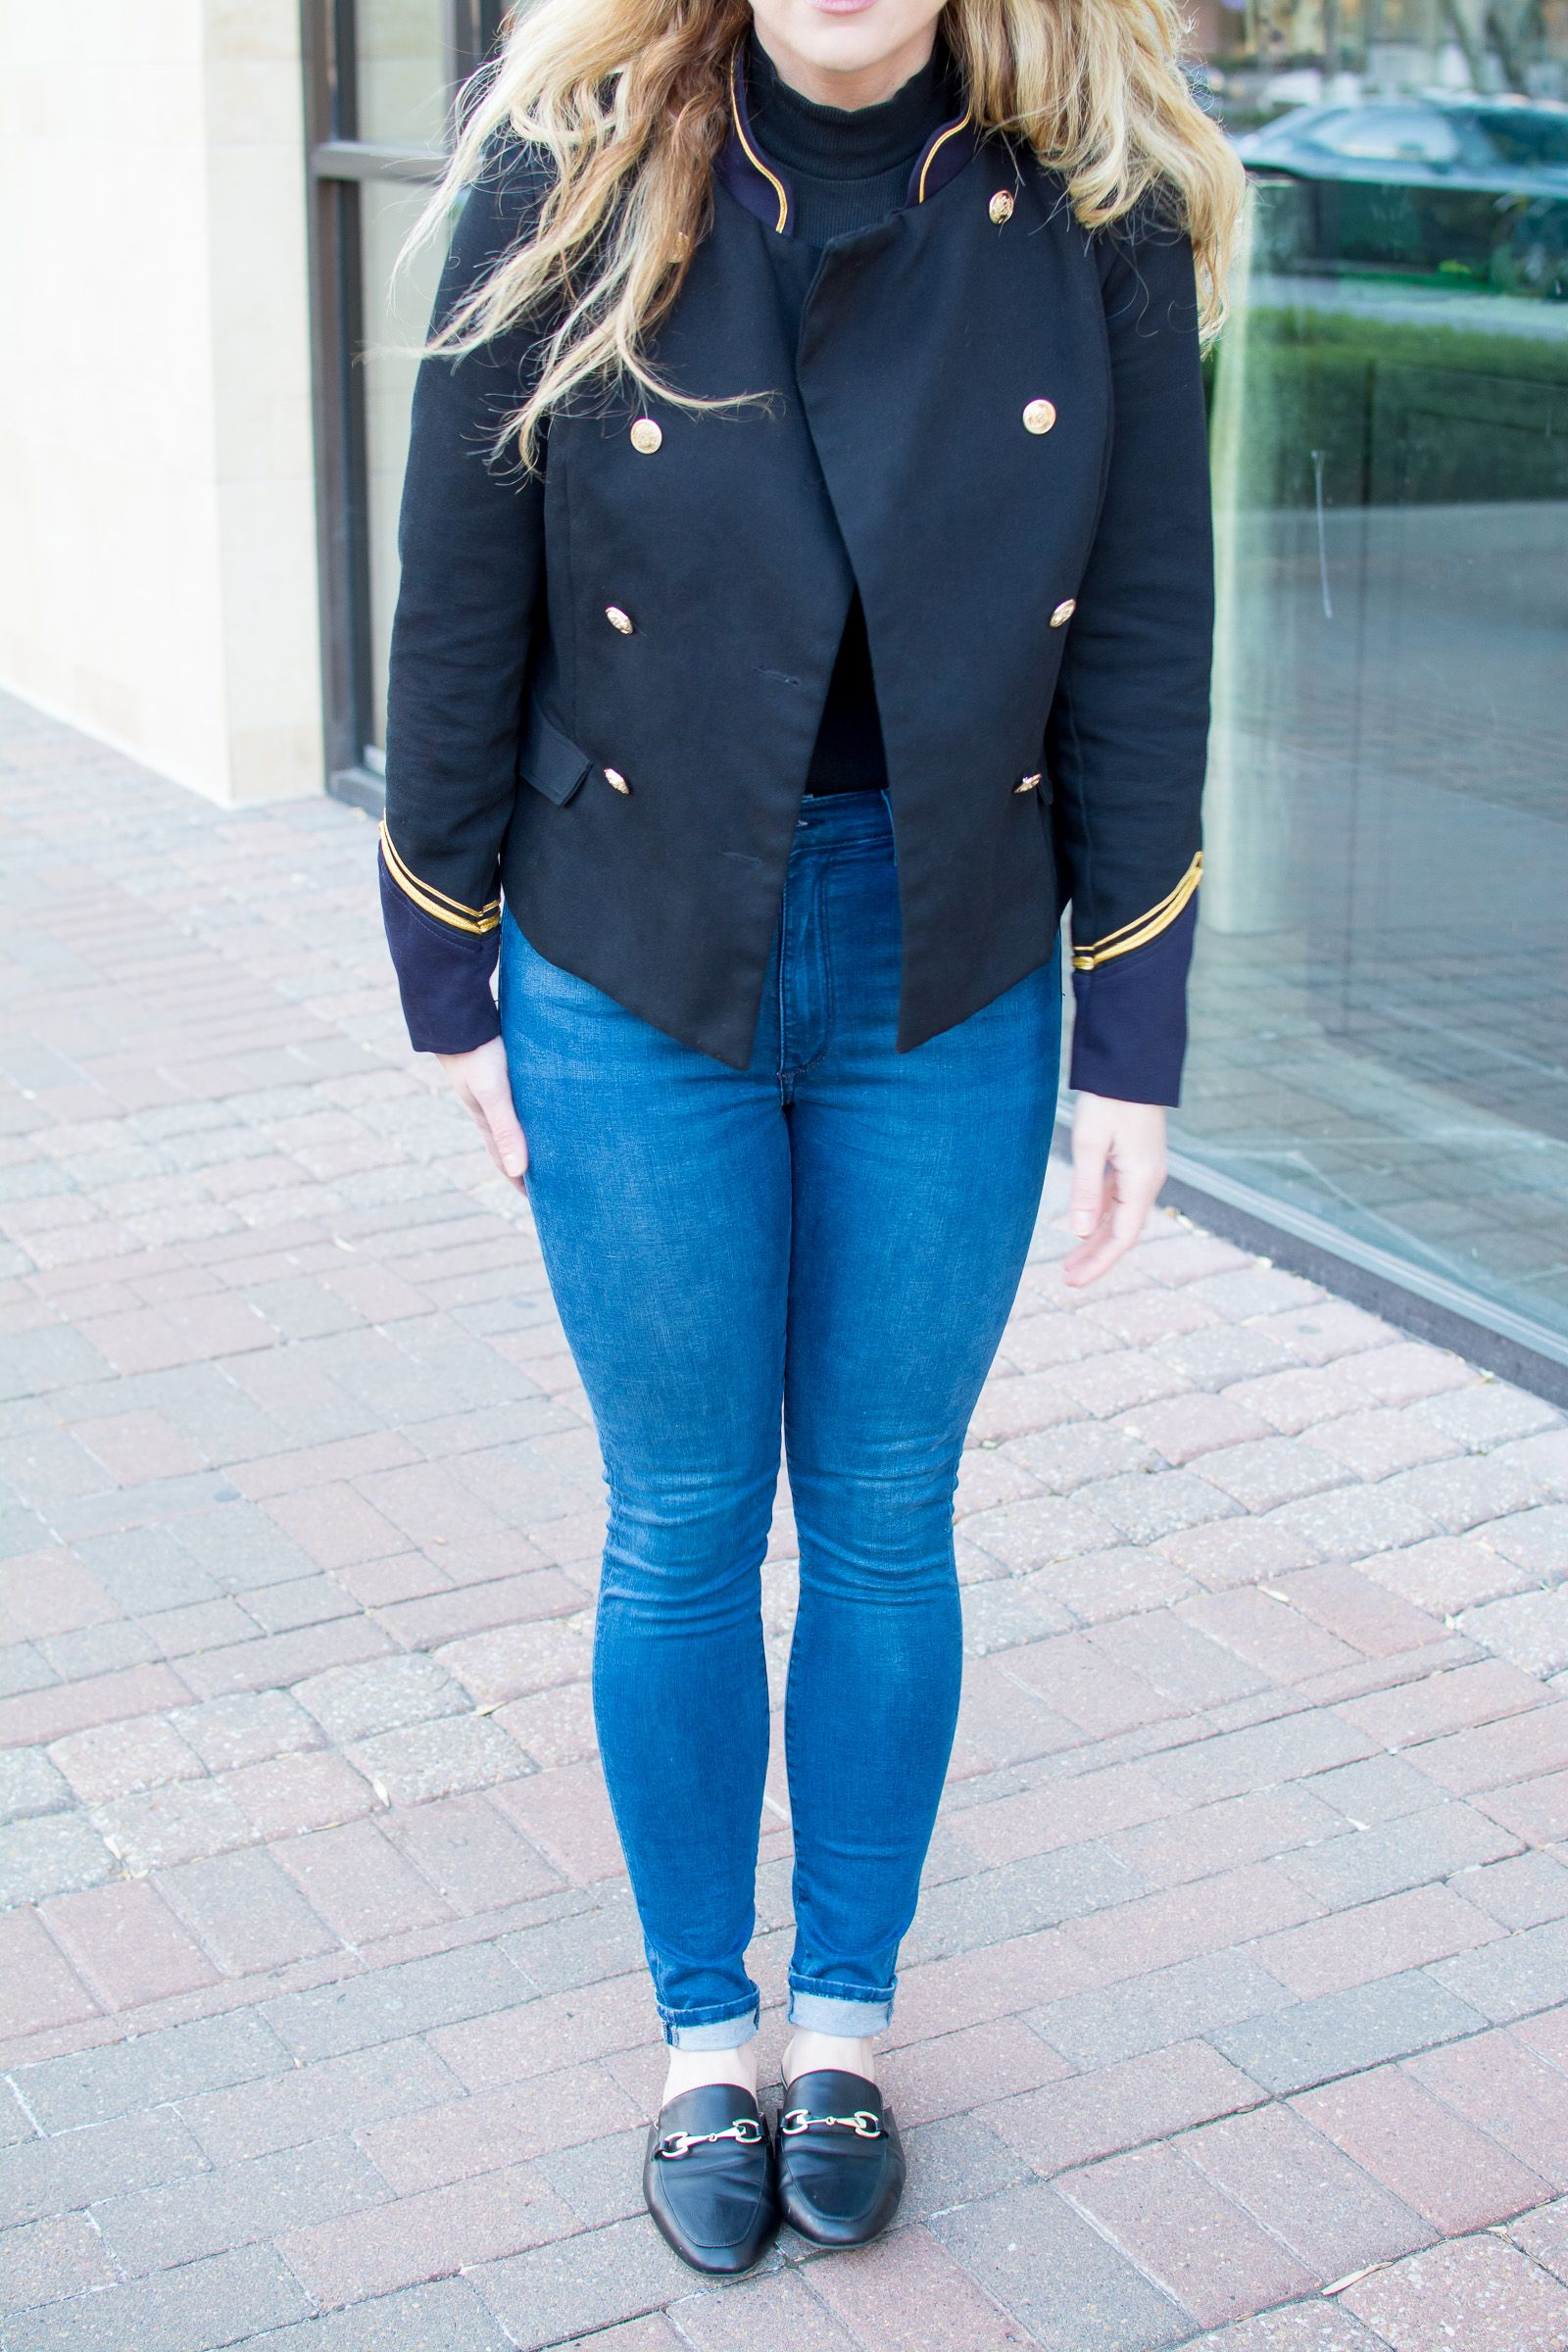 843e12b986c81 A Military Jacket with Skinny Jeans and Leather Mule Loafers.   Ashley from  Le Stylo Rouge